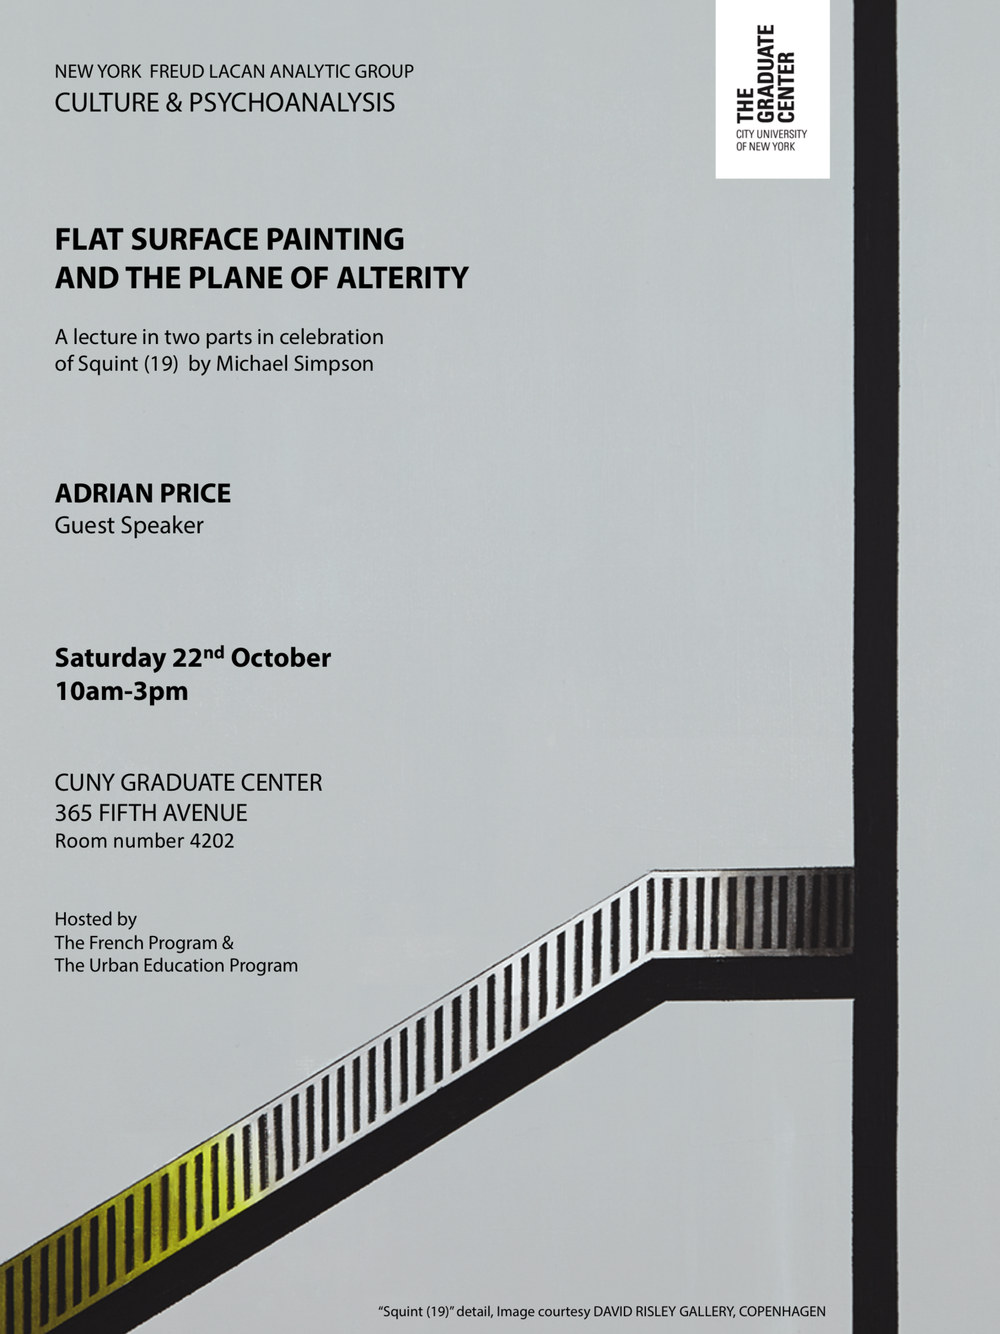 "Flat Surface Painting and the Plane of Alterity    A lecture in two parts by Adrian Price   in celebration of the painting ""Squint (19)"" by Michael Simpson   Saturday, October 22, 2016, from 10 am to 3 pm   The first lecture, ""Figure, ground, and screen"", will draw on Frank Stella's Aluminum series and Bernd & Hilla Becher's photographic project to suggest that the shaped frame and the blank ground constitute different ways of problematizing the edge in such a way as to subvert visual cognition. The second lecture, ""An oblique heresy"", will examine the dialectic between pictorial space and the screen of the Other that facilitates the return movement of the gaze-object as conceptualized by Jacques Lacan. Further to performing within this pictorial discipline, Michael Simpson's recent ""Squint"" paintings offer a wry and scintillating acknowledgment of its parameters, together with a critique of normalizing conventions."